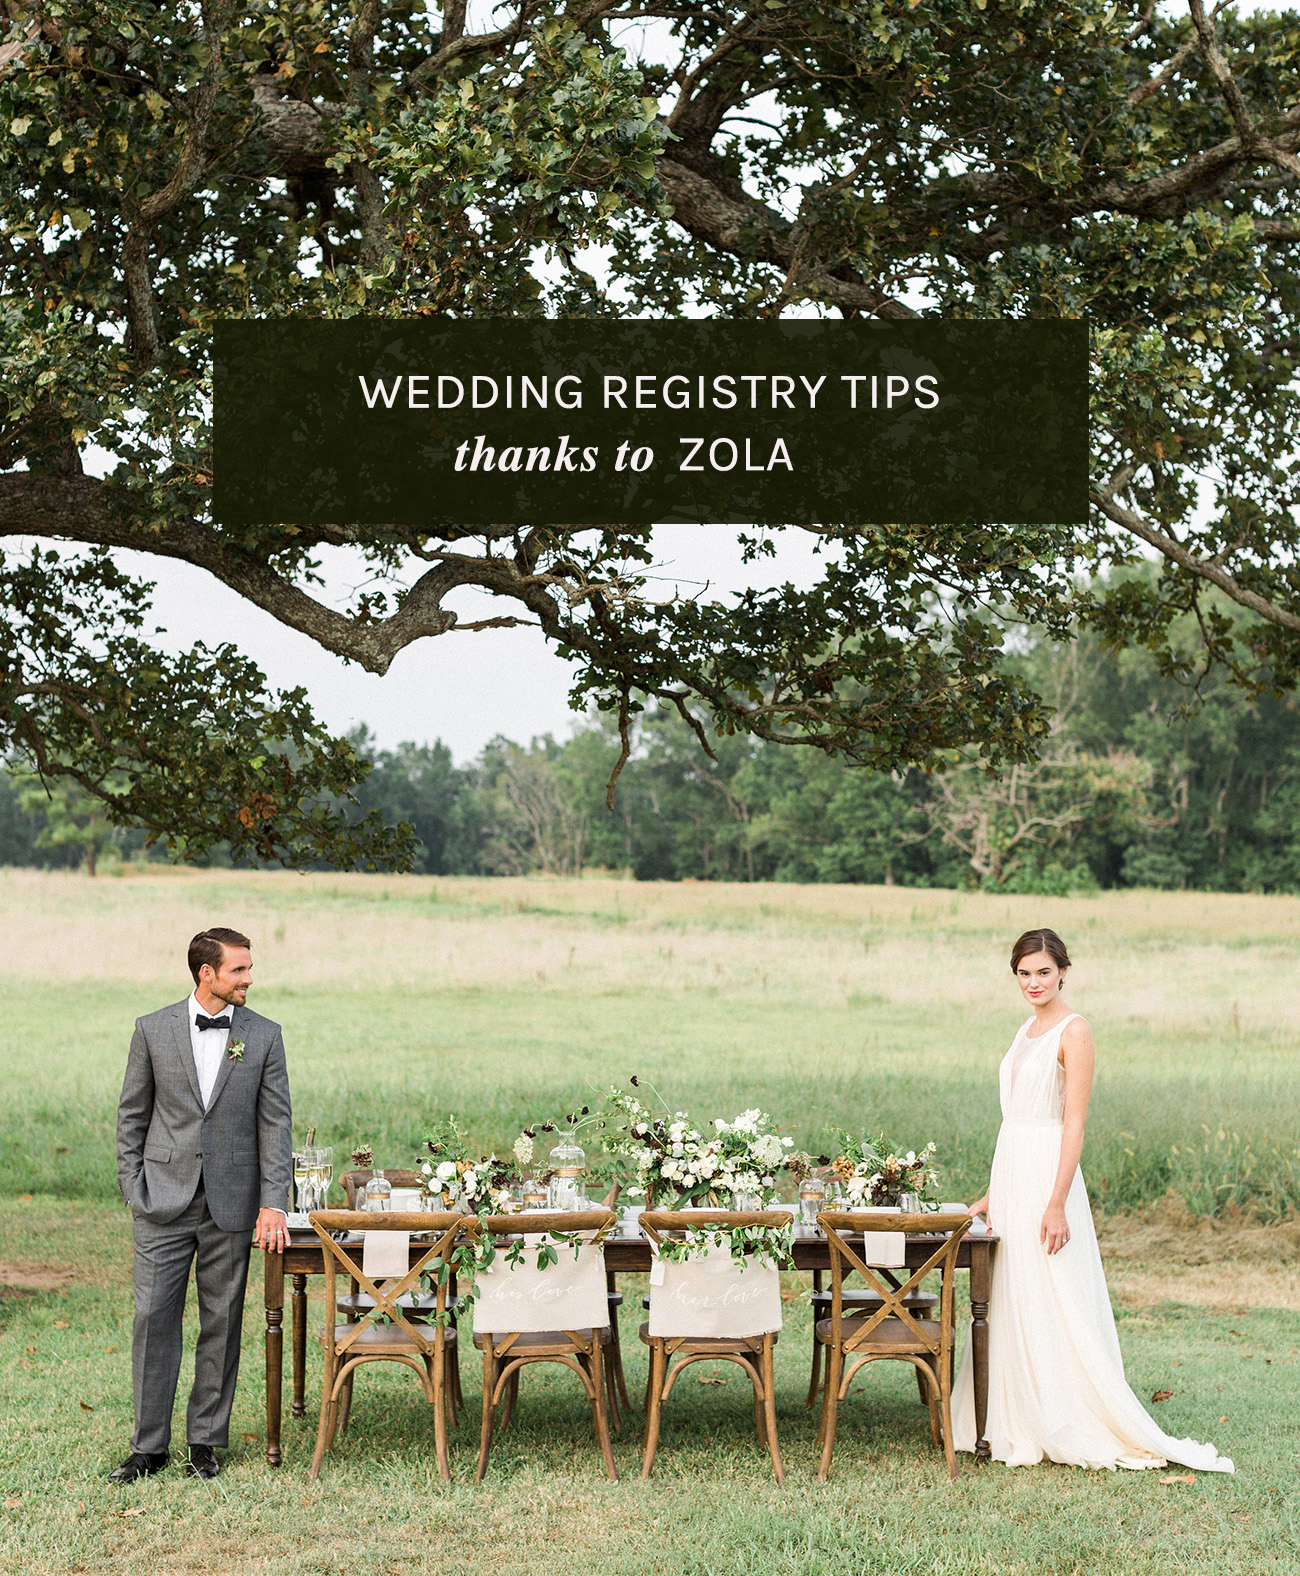 Wedding Registry Tips thanks to ZOLA